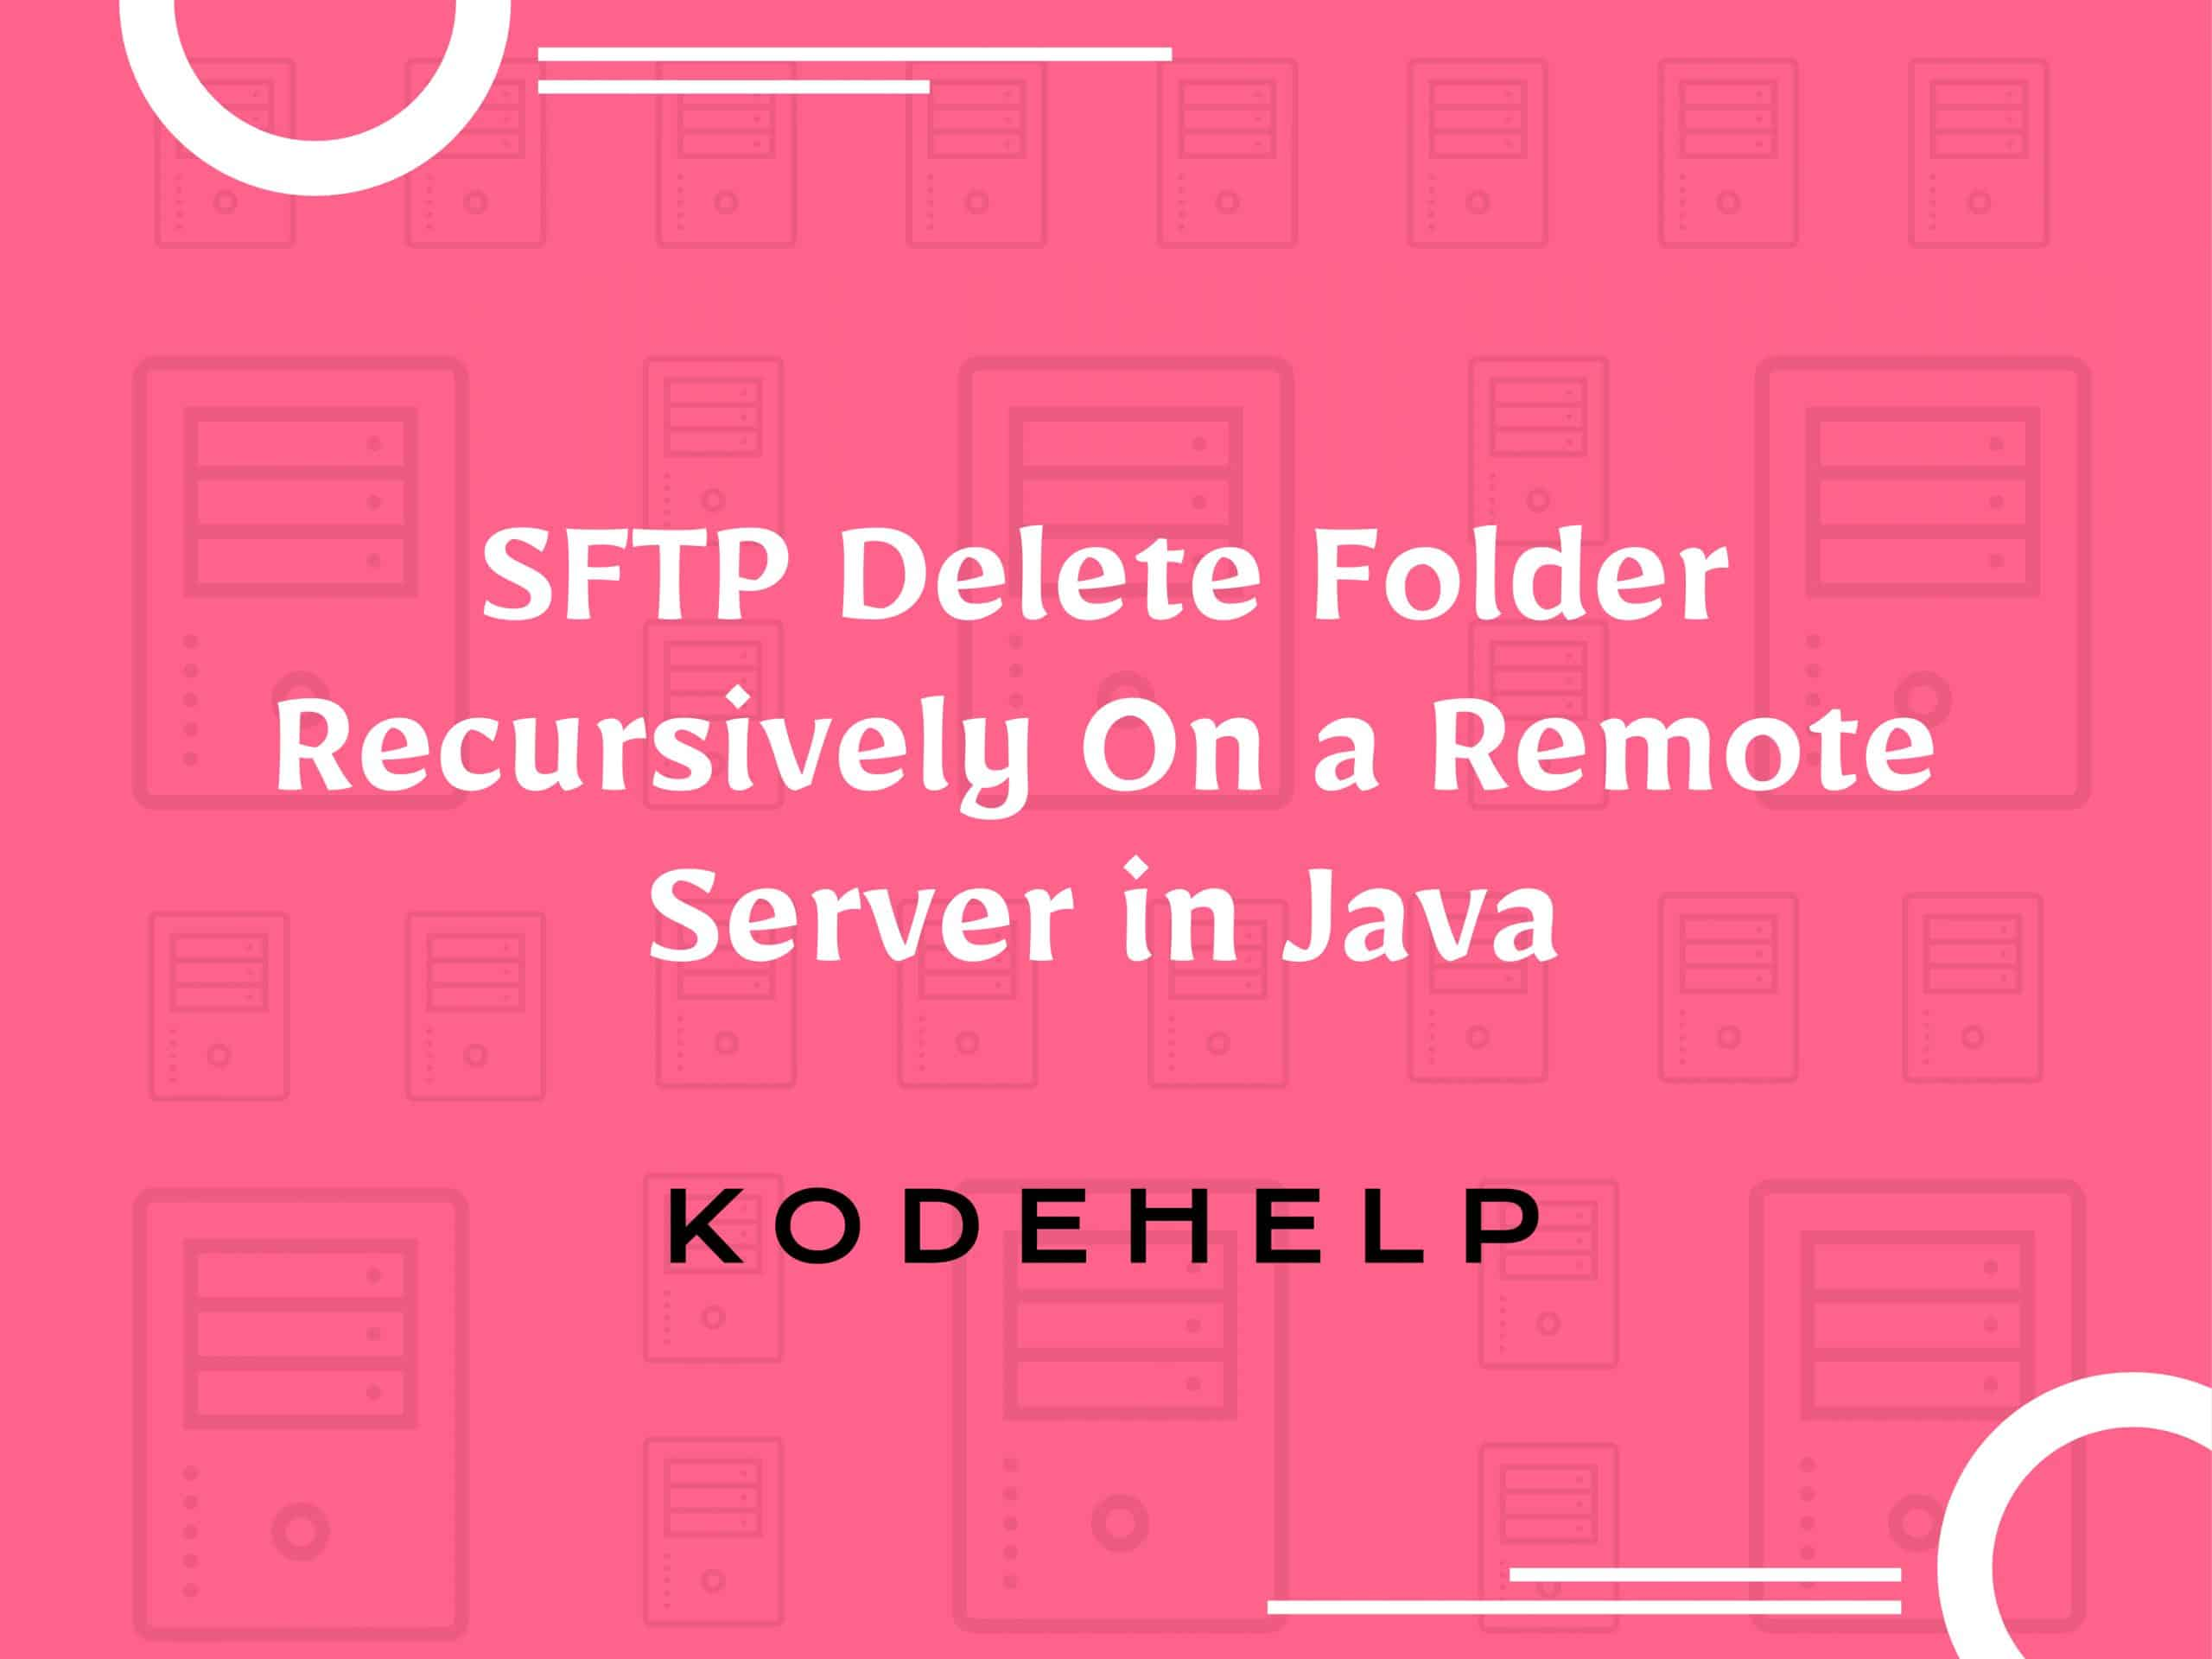 SFTP Delete Folder Recursively on a Remote Server in Java